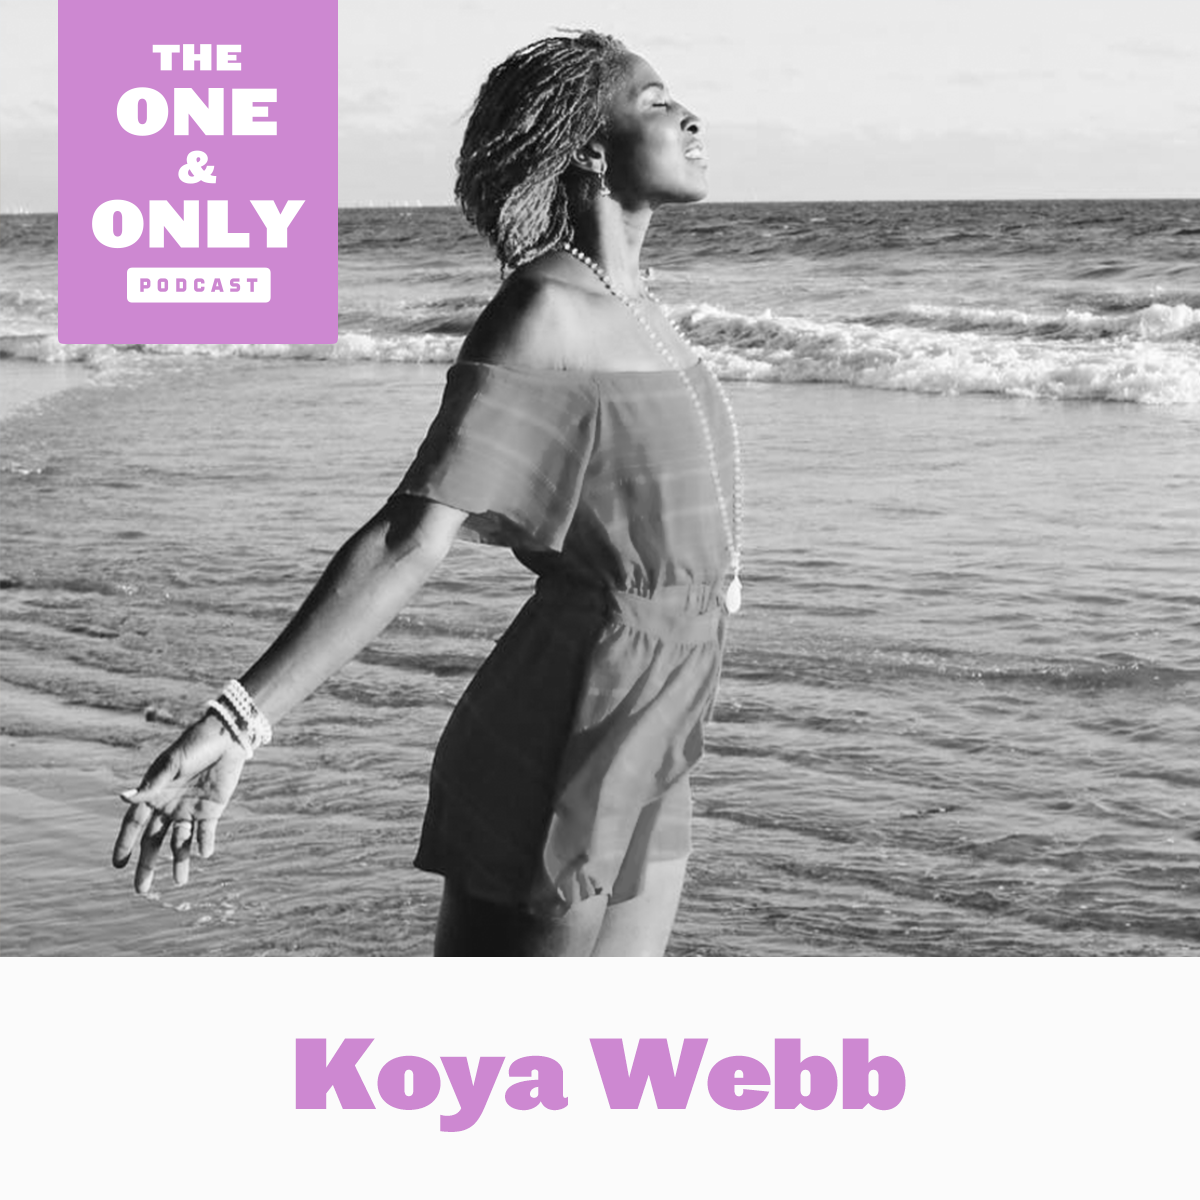 Koya Webb on The One & Only with Mark Shapiro